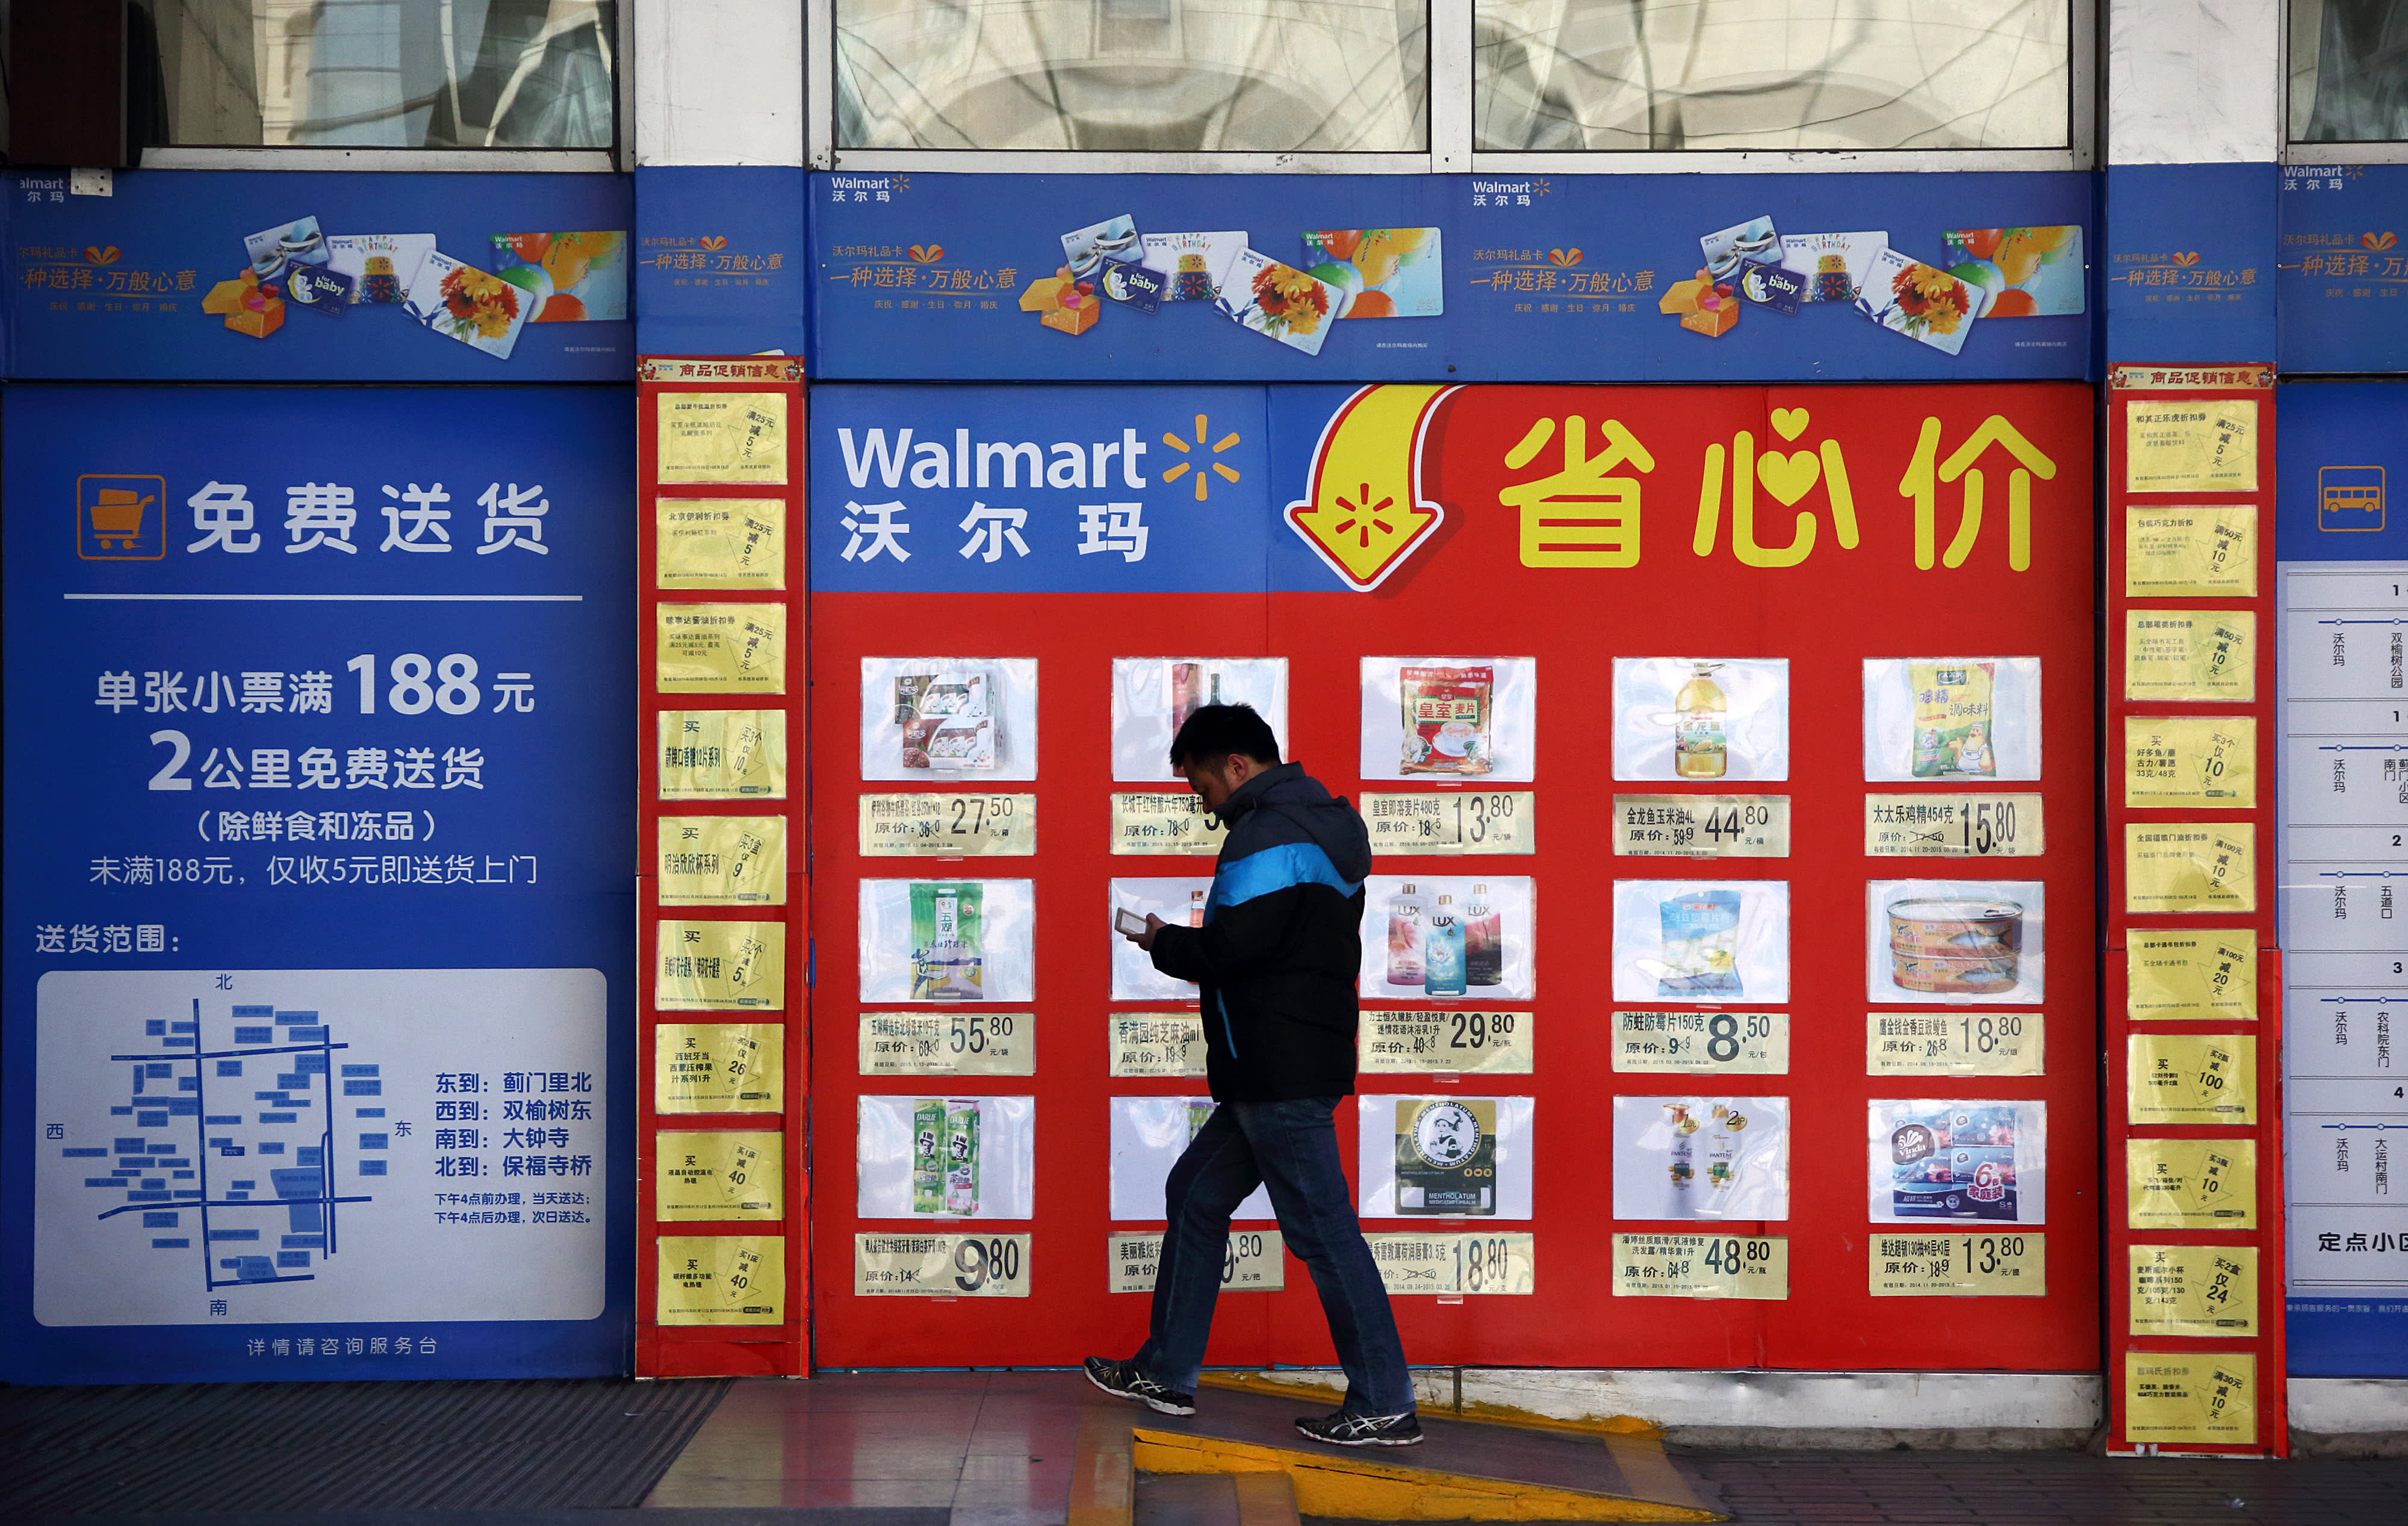 Walmart's push into China's delivery market includes a smaller store